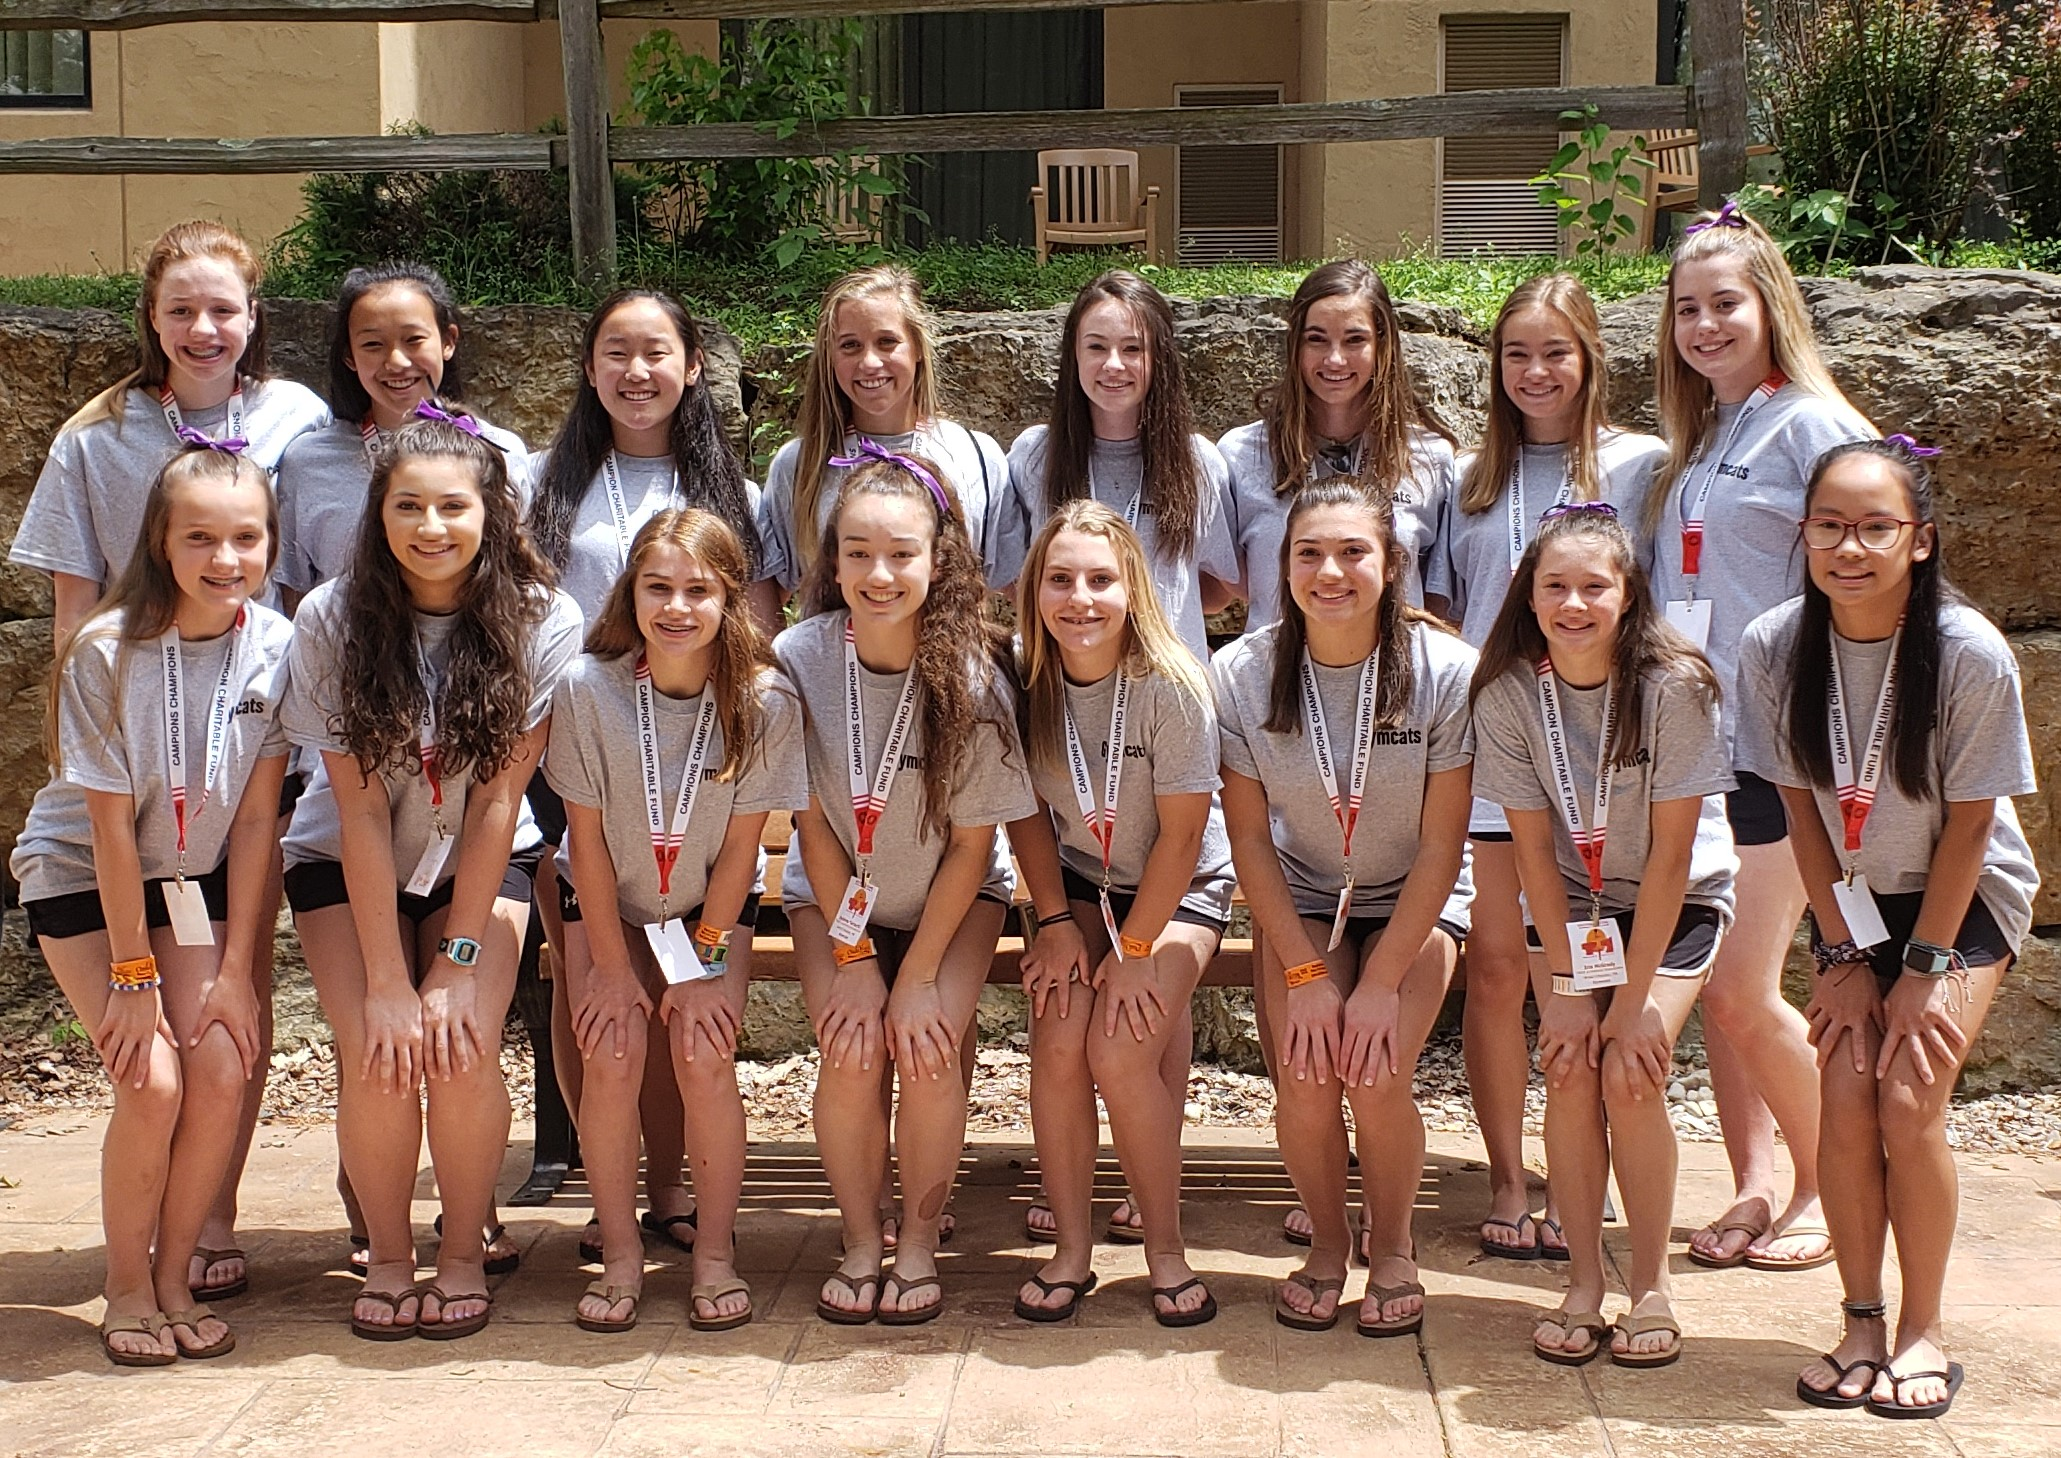 YMCA of Greater Brandywine's Gymnastics Team Wraps Up Strong Year with National Success